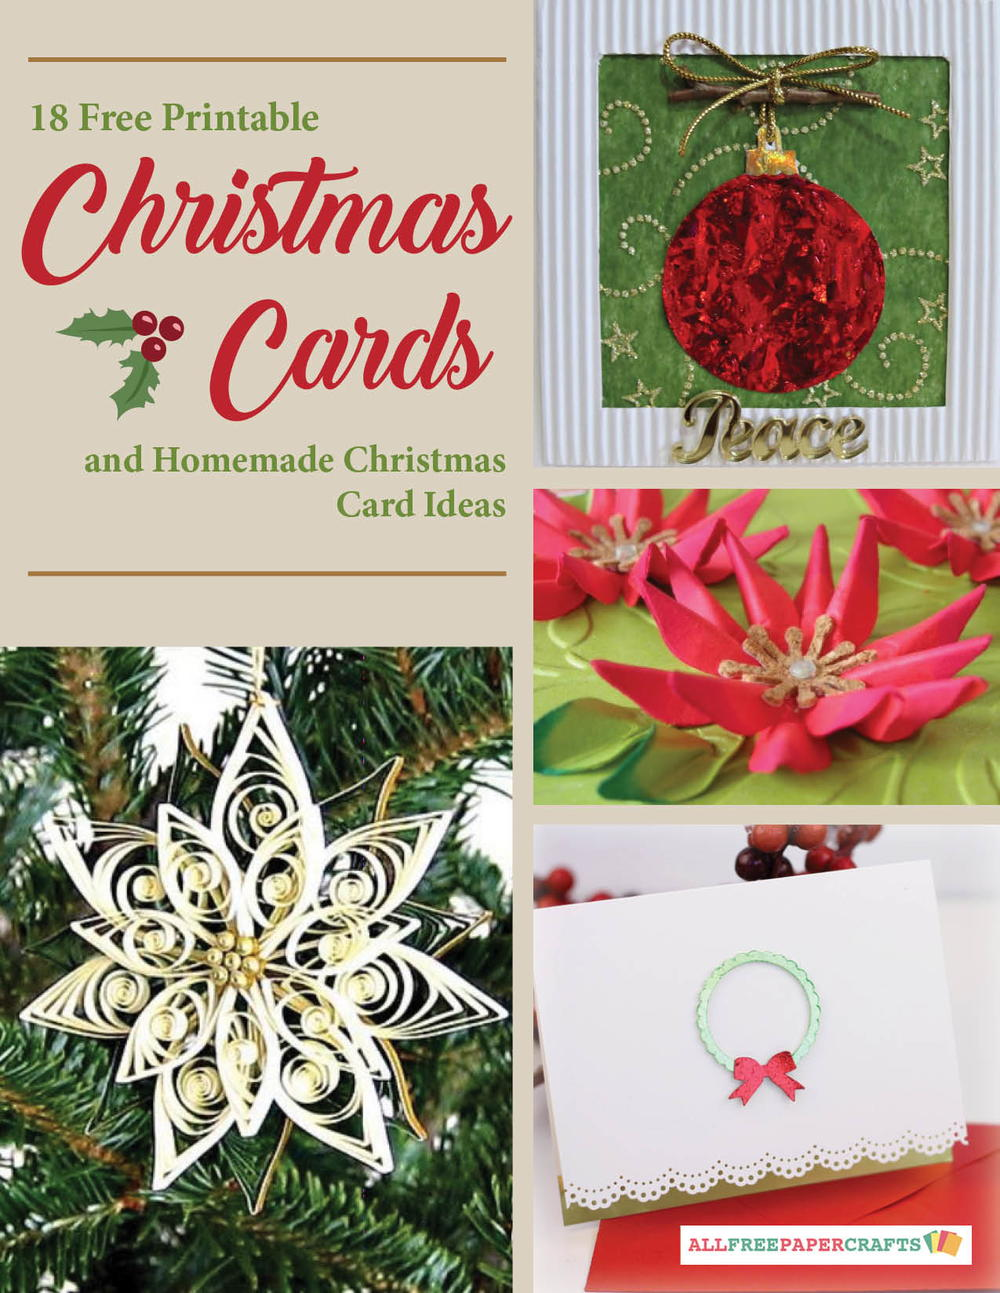 18 free printable christmas cards and homemade christmas card ideas 18 free printable christmas cards and homemade christmas card ideas free ebook allfreepapercrafts m4hsunfo